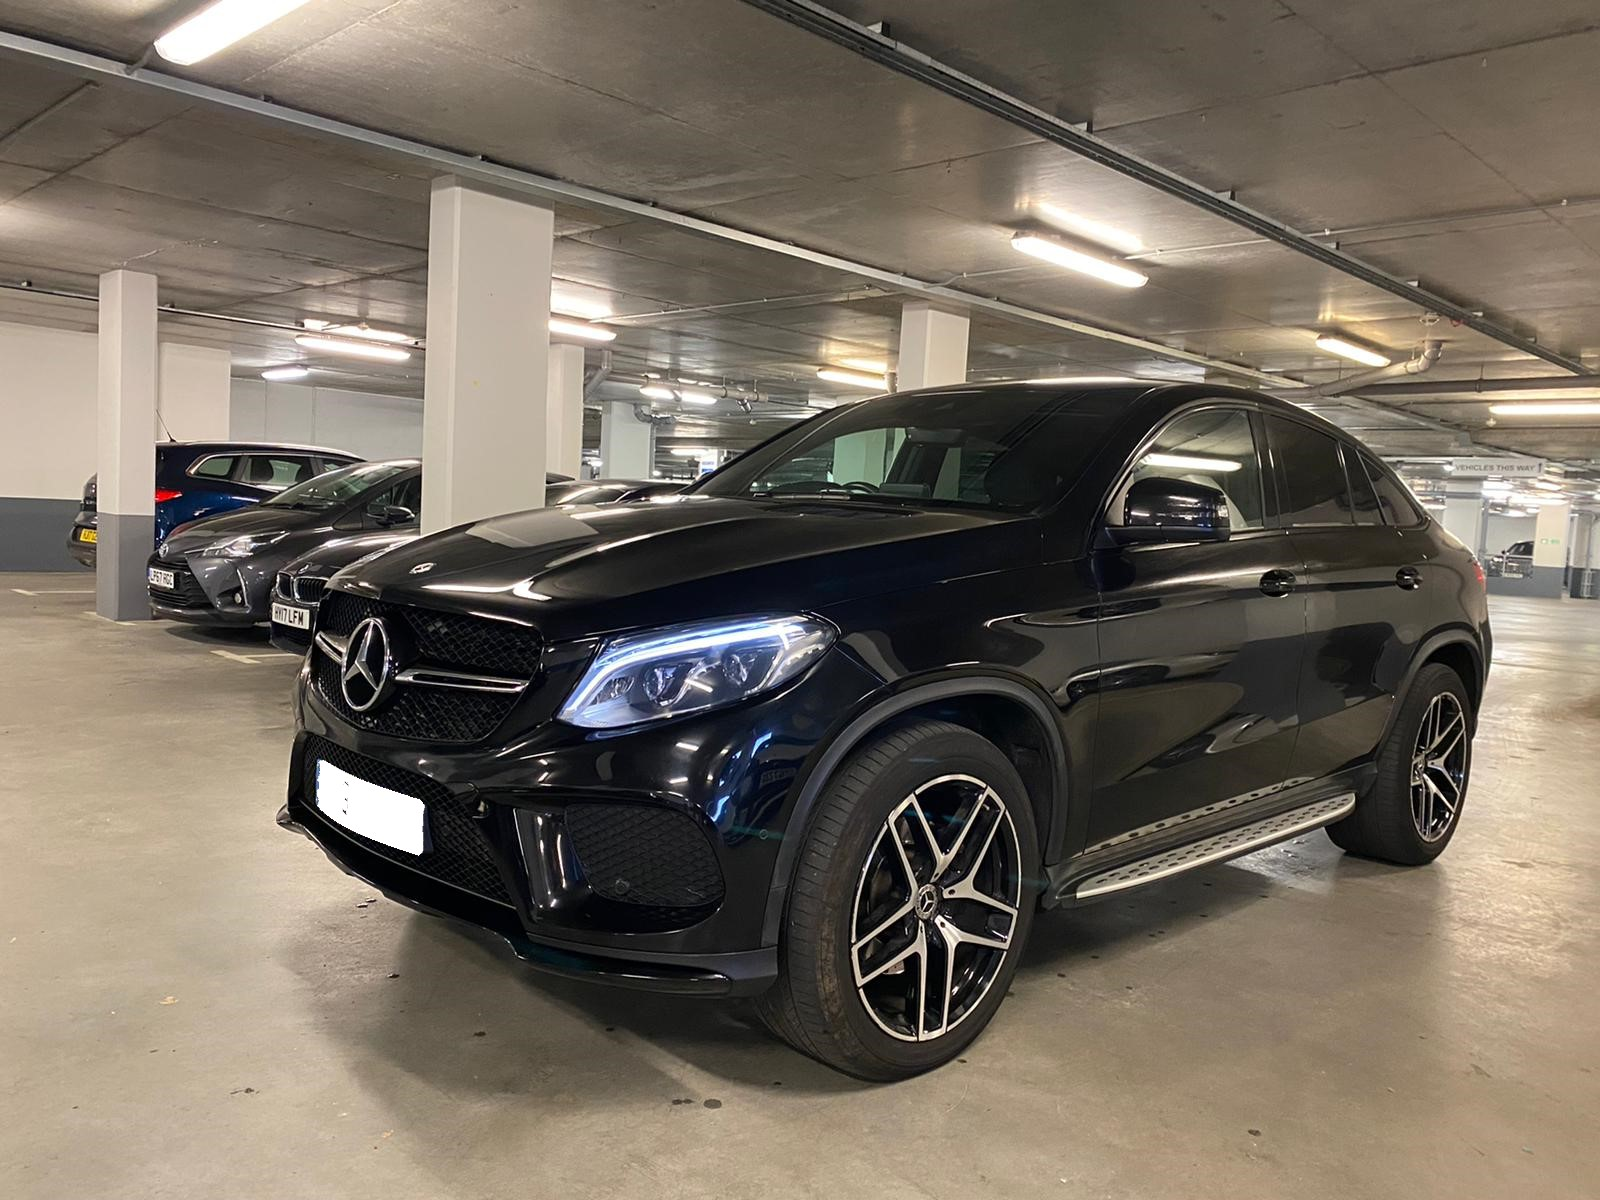 Mercedes Benz GLE 350 D 3.0 AMG Night Edition